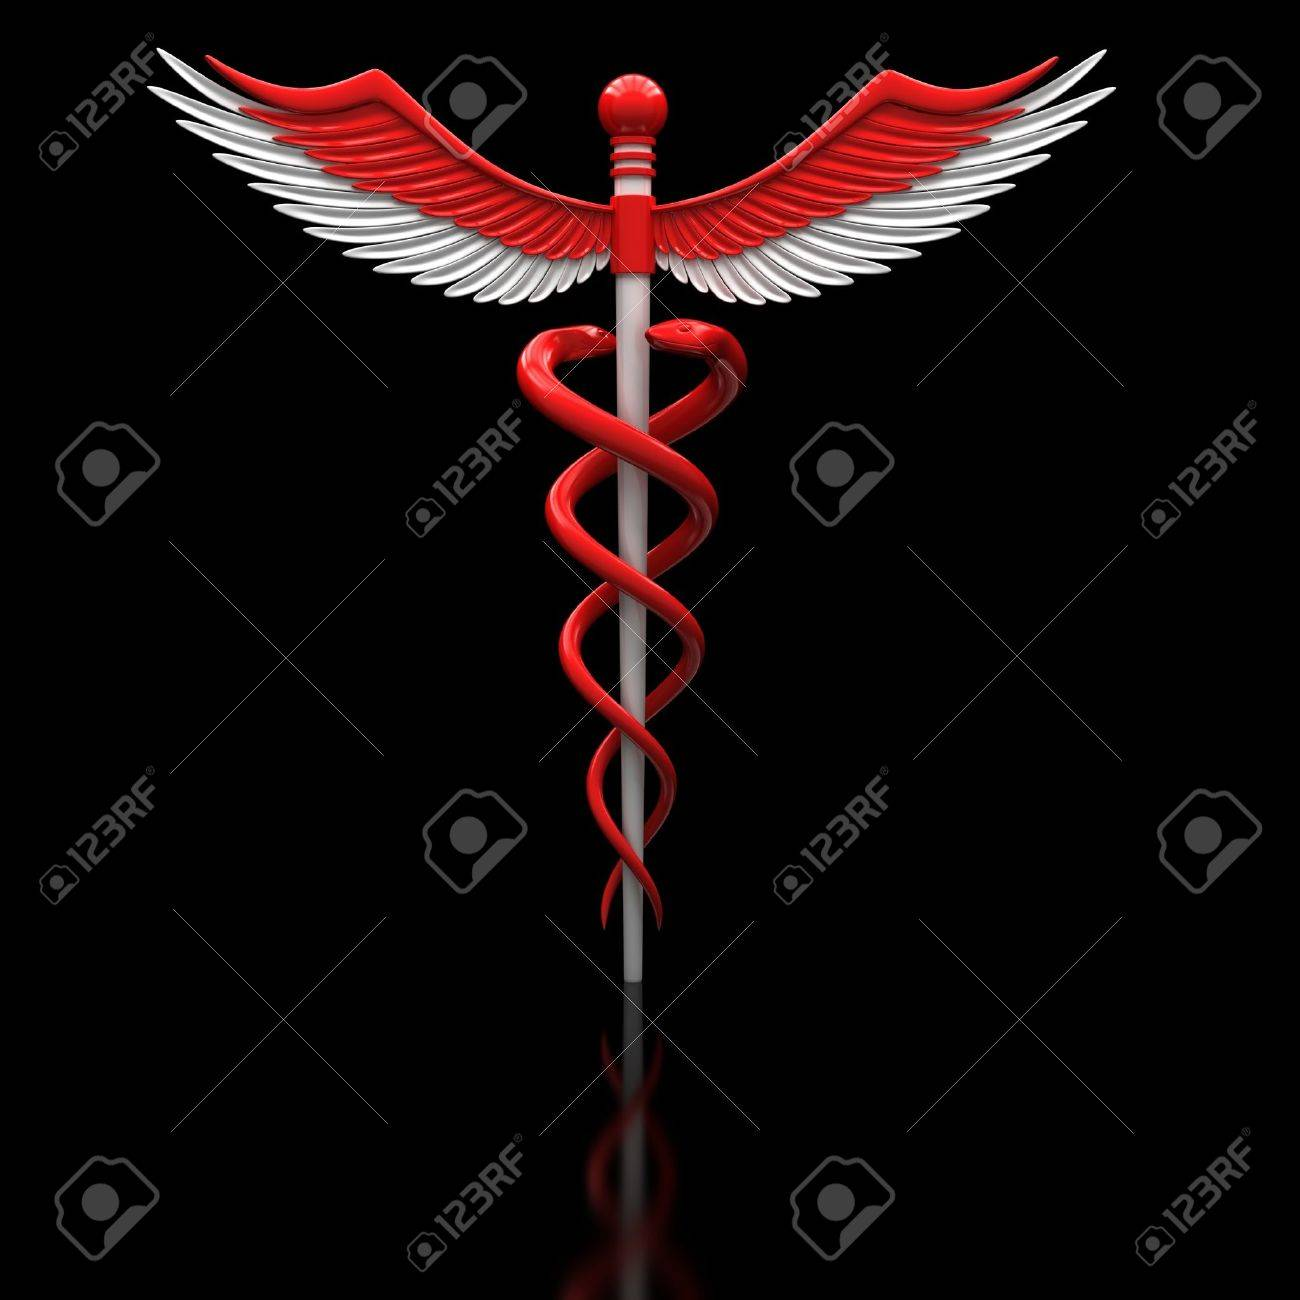 Red medical caduceus symbol on a black glossy surface. Stock Photo - 12065763